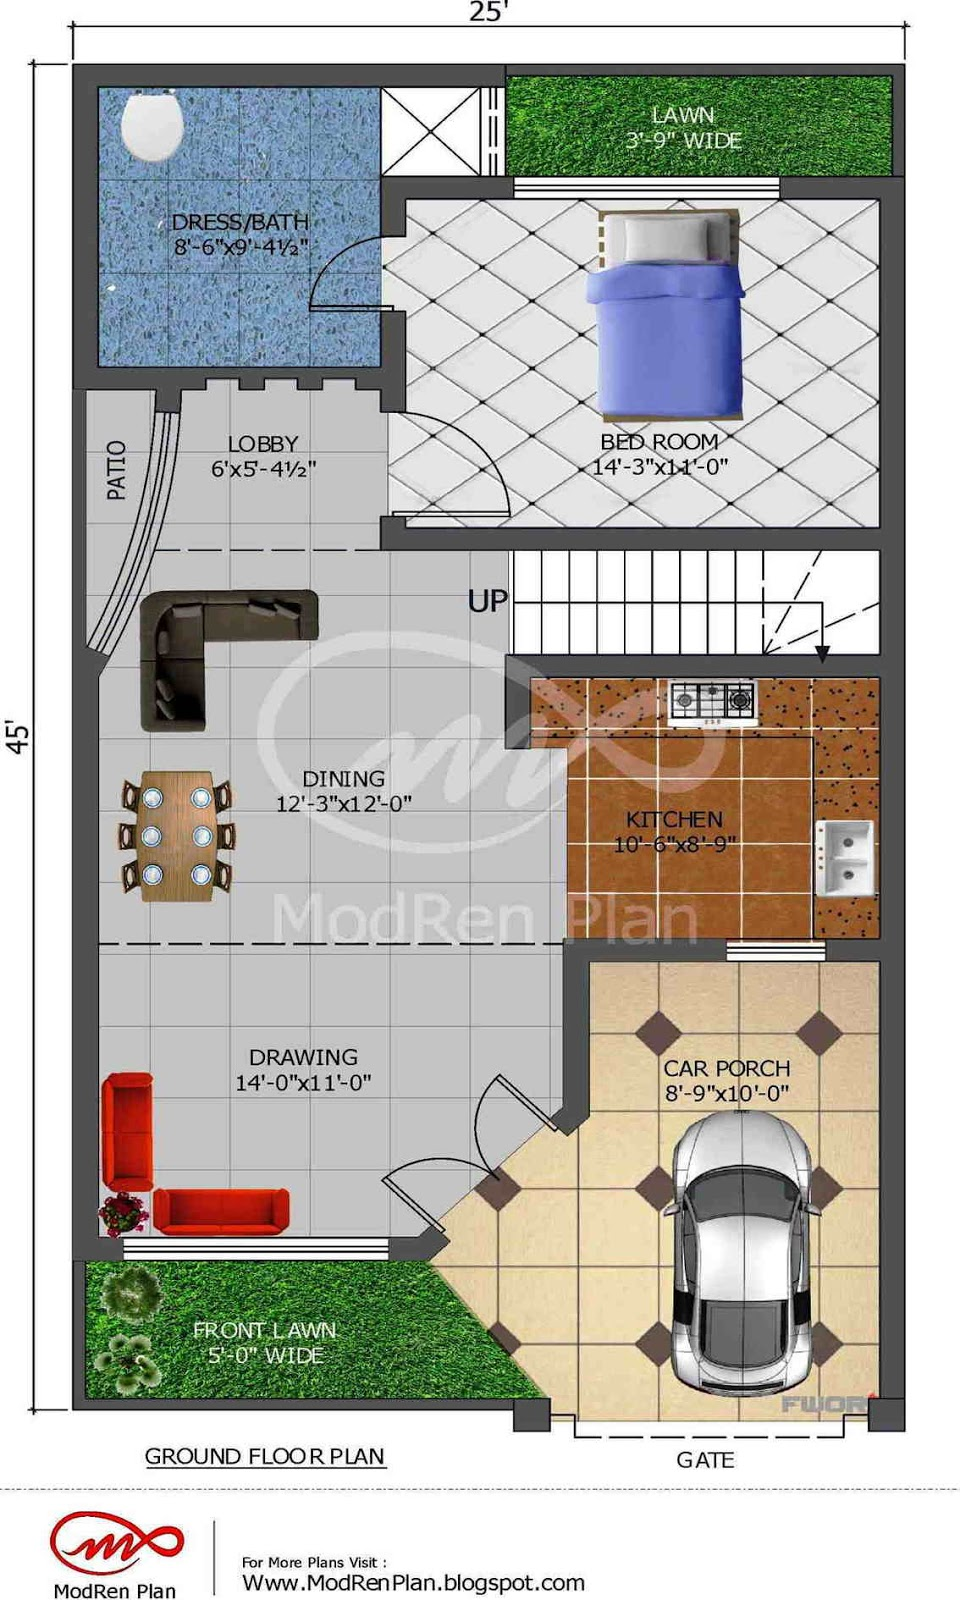 5 marla house plan 1200 sq ft 25x45 feet for Floor map design